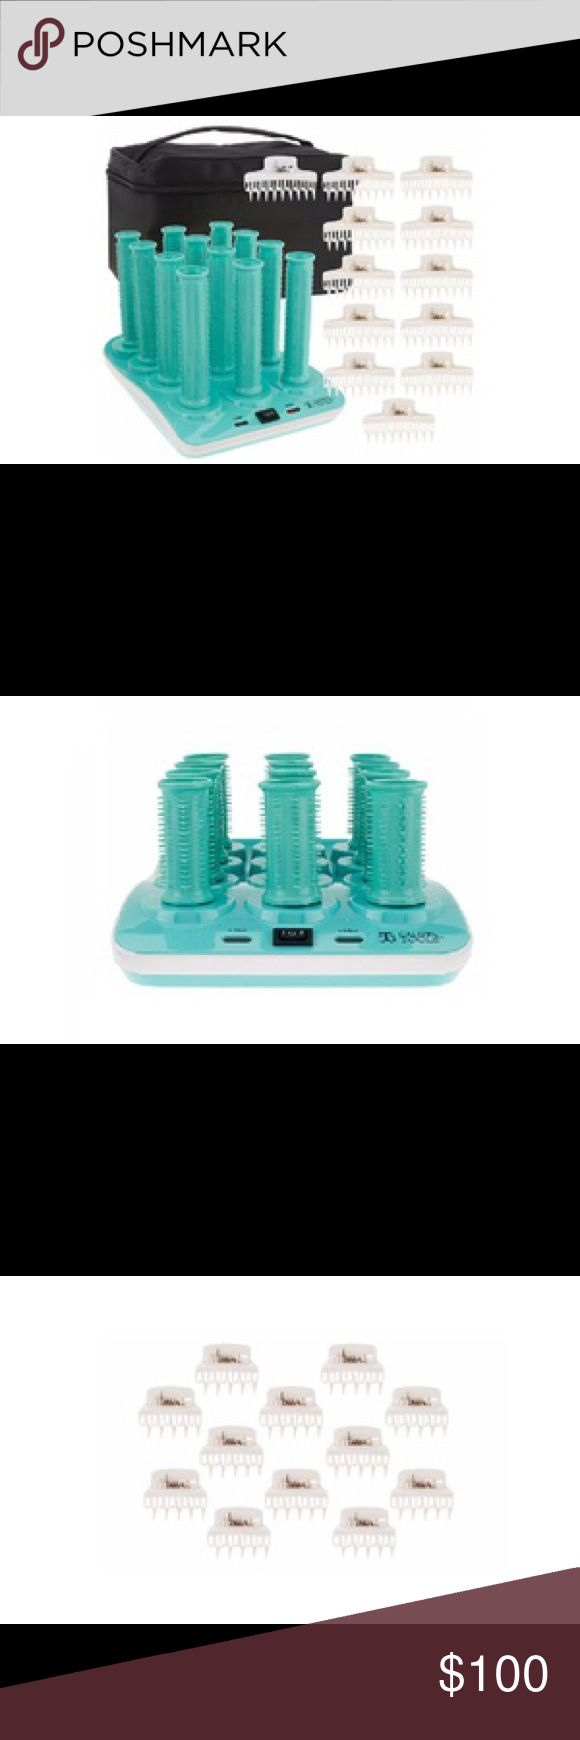 """Calista Hot Wavers Long Hair-Roller Set Long 1"""" hair rollers with plastic butterfly clips help shape hair into waves thanks to a charging base with two heat settings.  Set Contents: - 12 long rollers - 12 plastic butterfly clips - Charging base with 12 roller station - Travel Case  Details: - Charging base has two heat settings - Roller diameter 1"""" - Traveling bag has zips close and has 3"""" drop handle - Base dimensions: 7""""W * 10""""L * 1.25""""H - Travel bag dimensions: 10""""W * 7""""H * 7.75""""D…"""